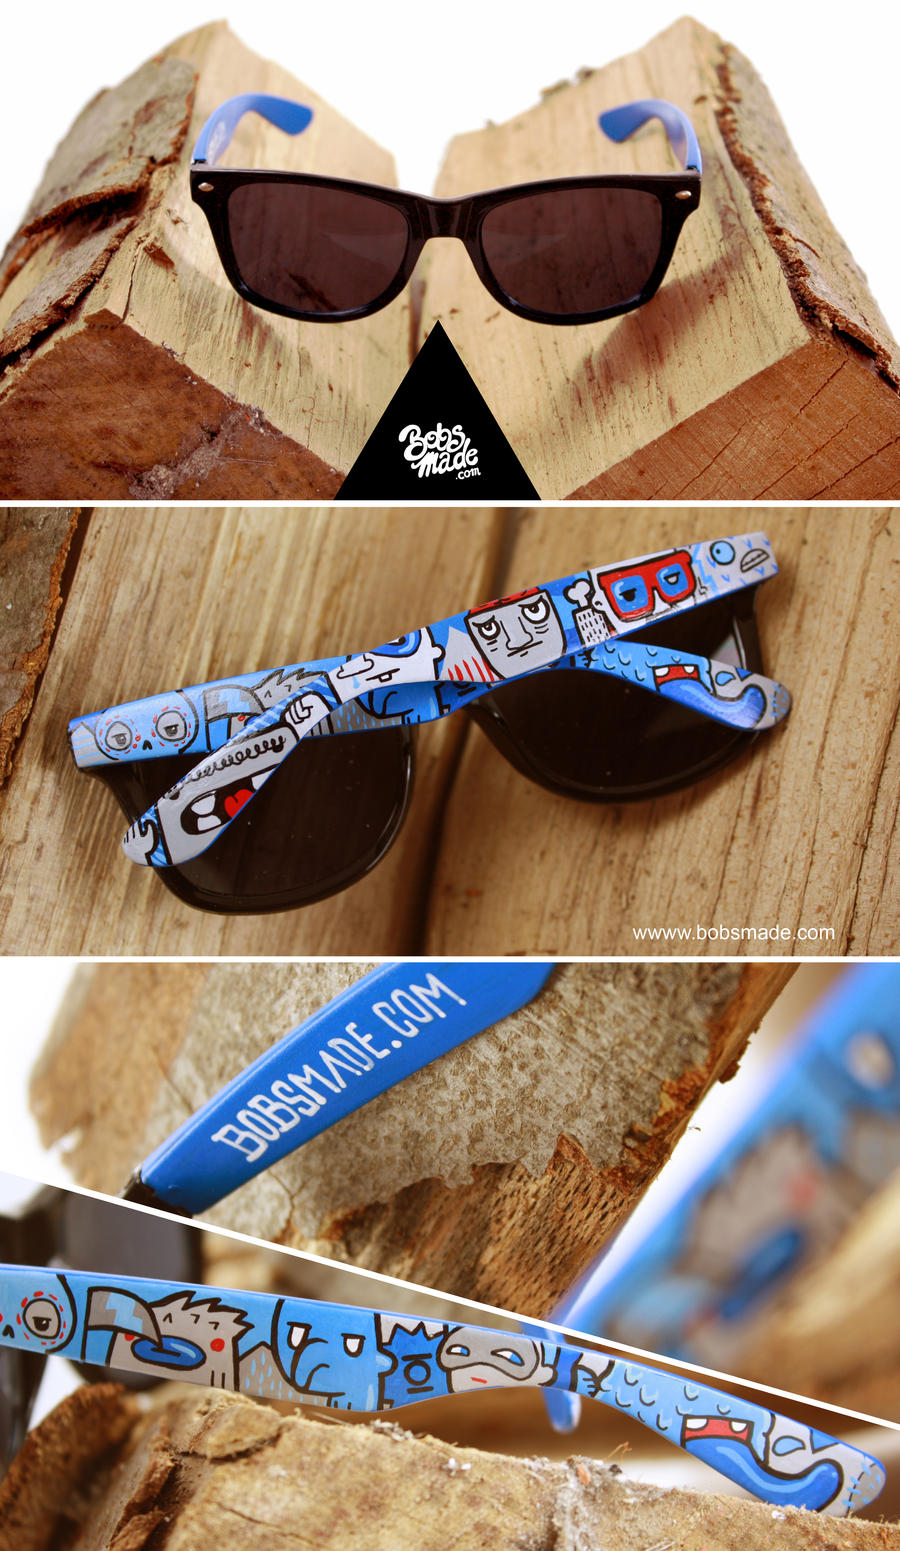 Laurin Sunglasses by Bobsmade